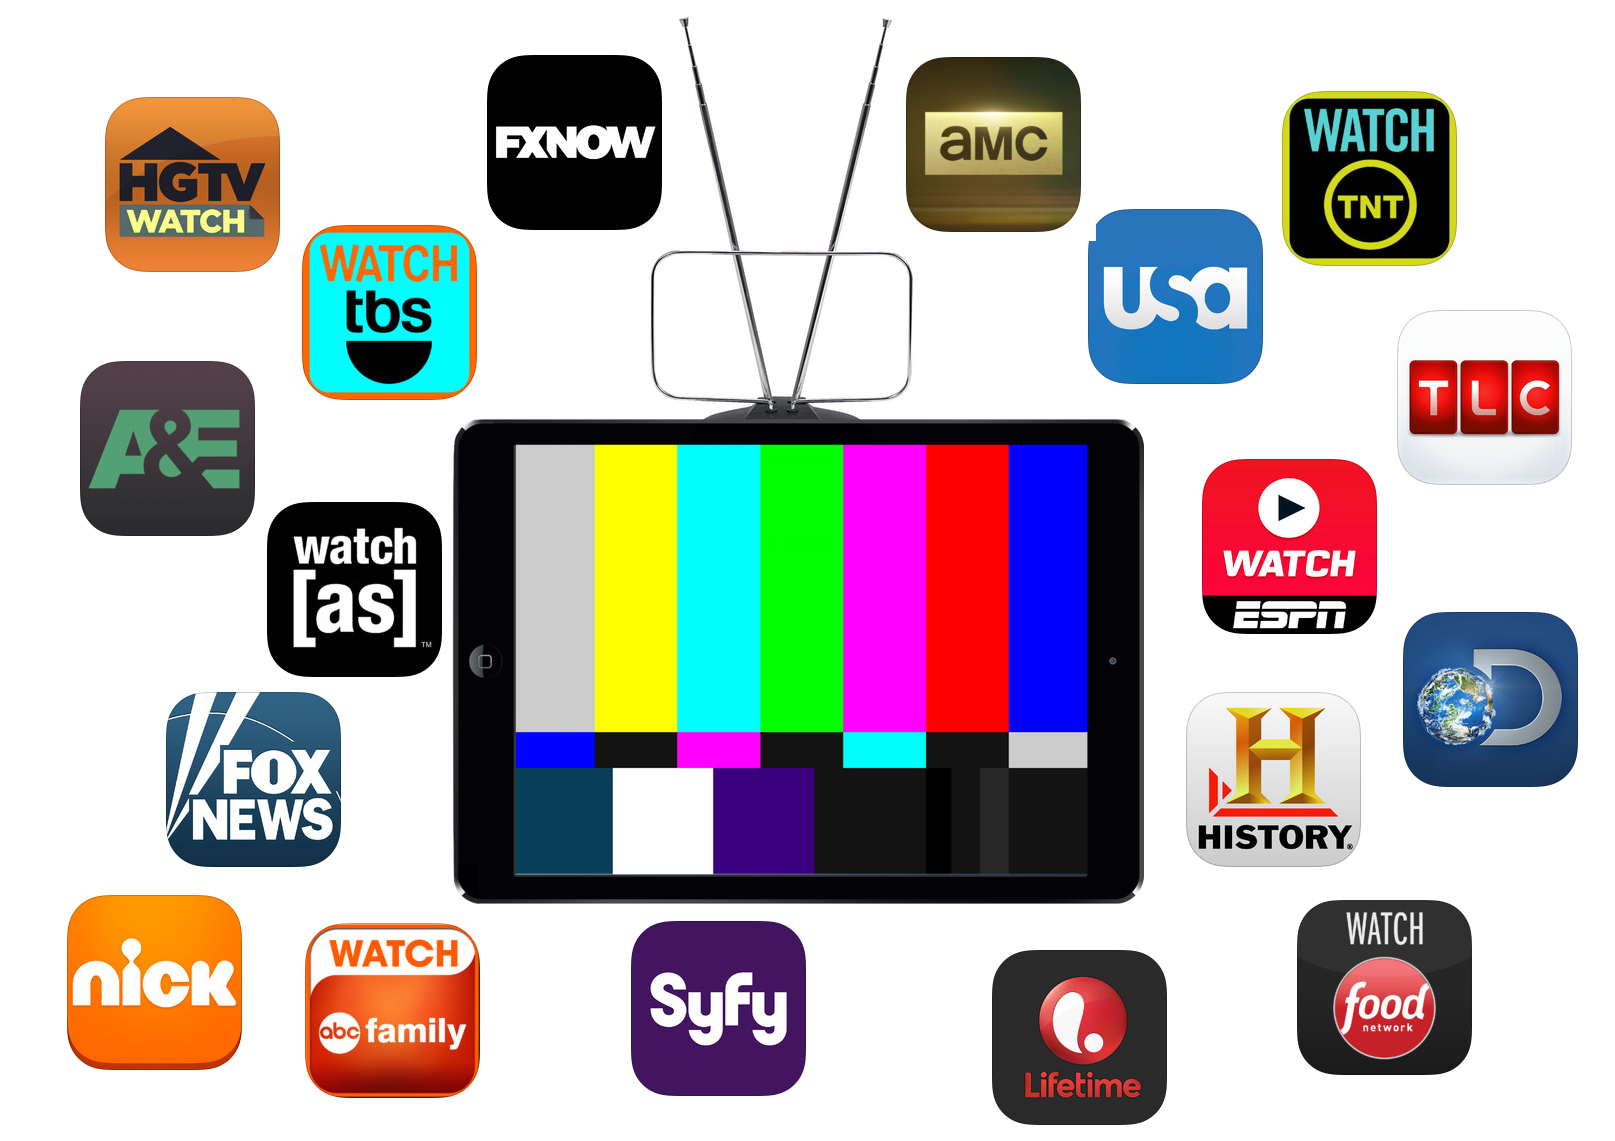 iOS is better than Apple TV